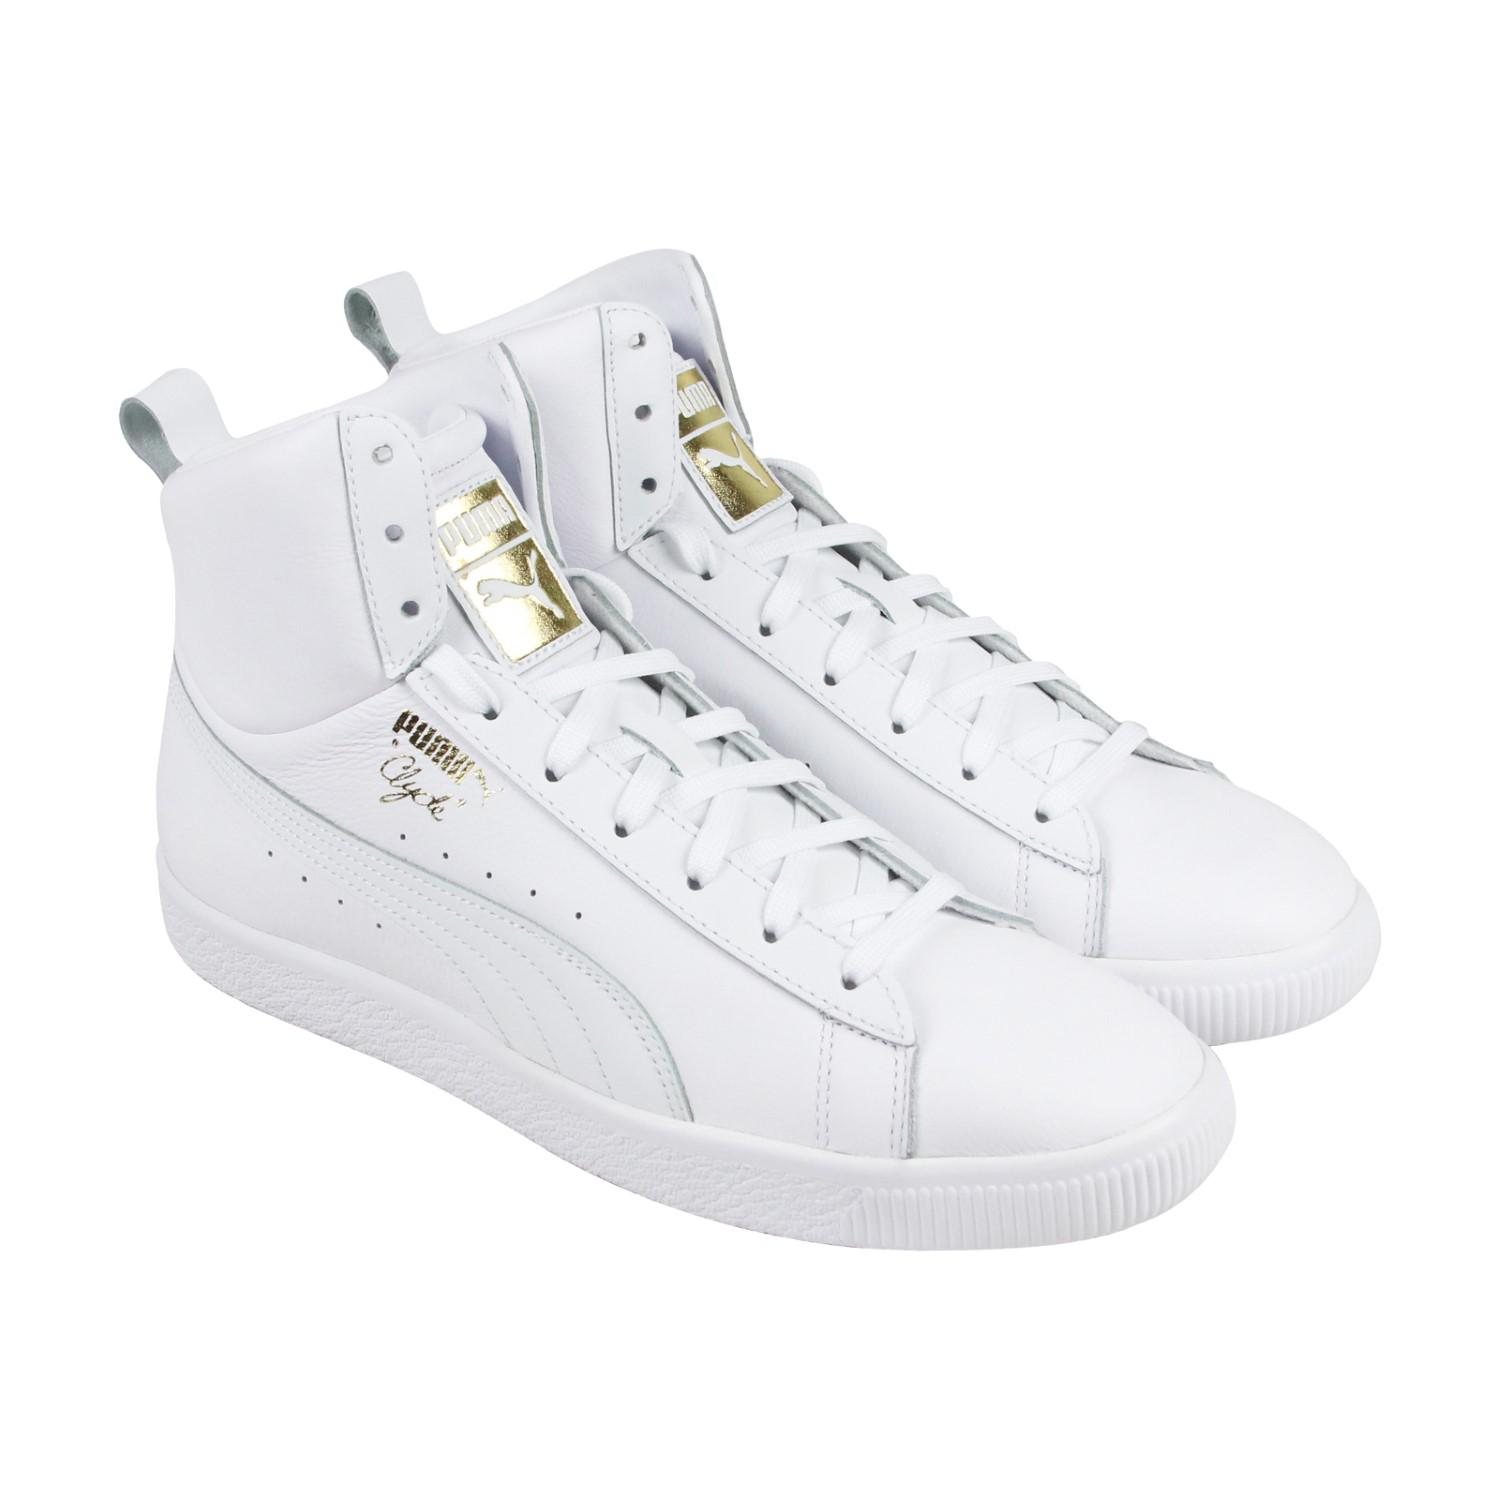 c5c871a0cbb Lyst - PUMA Clyde Mid Core Foil White Mens High Top Sneakers in ...